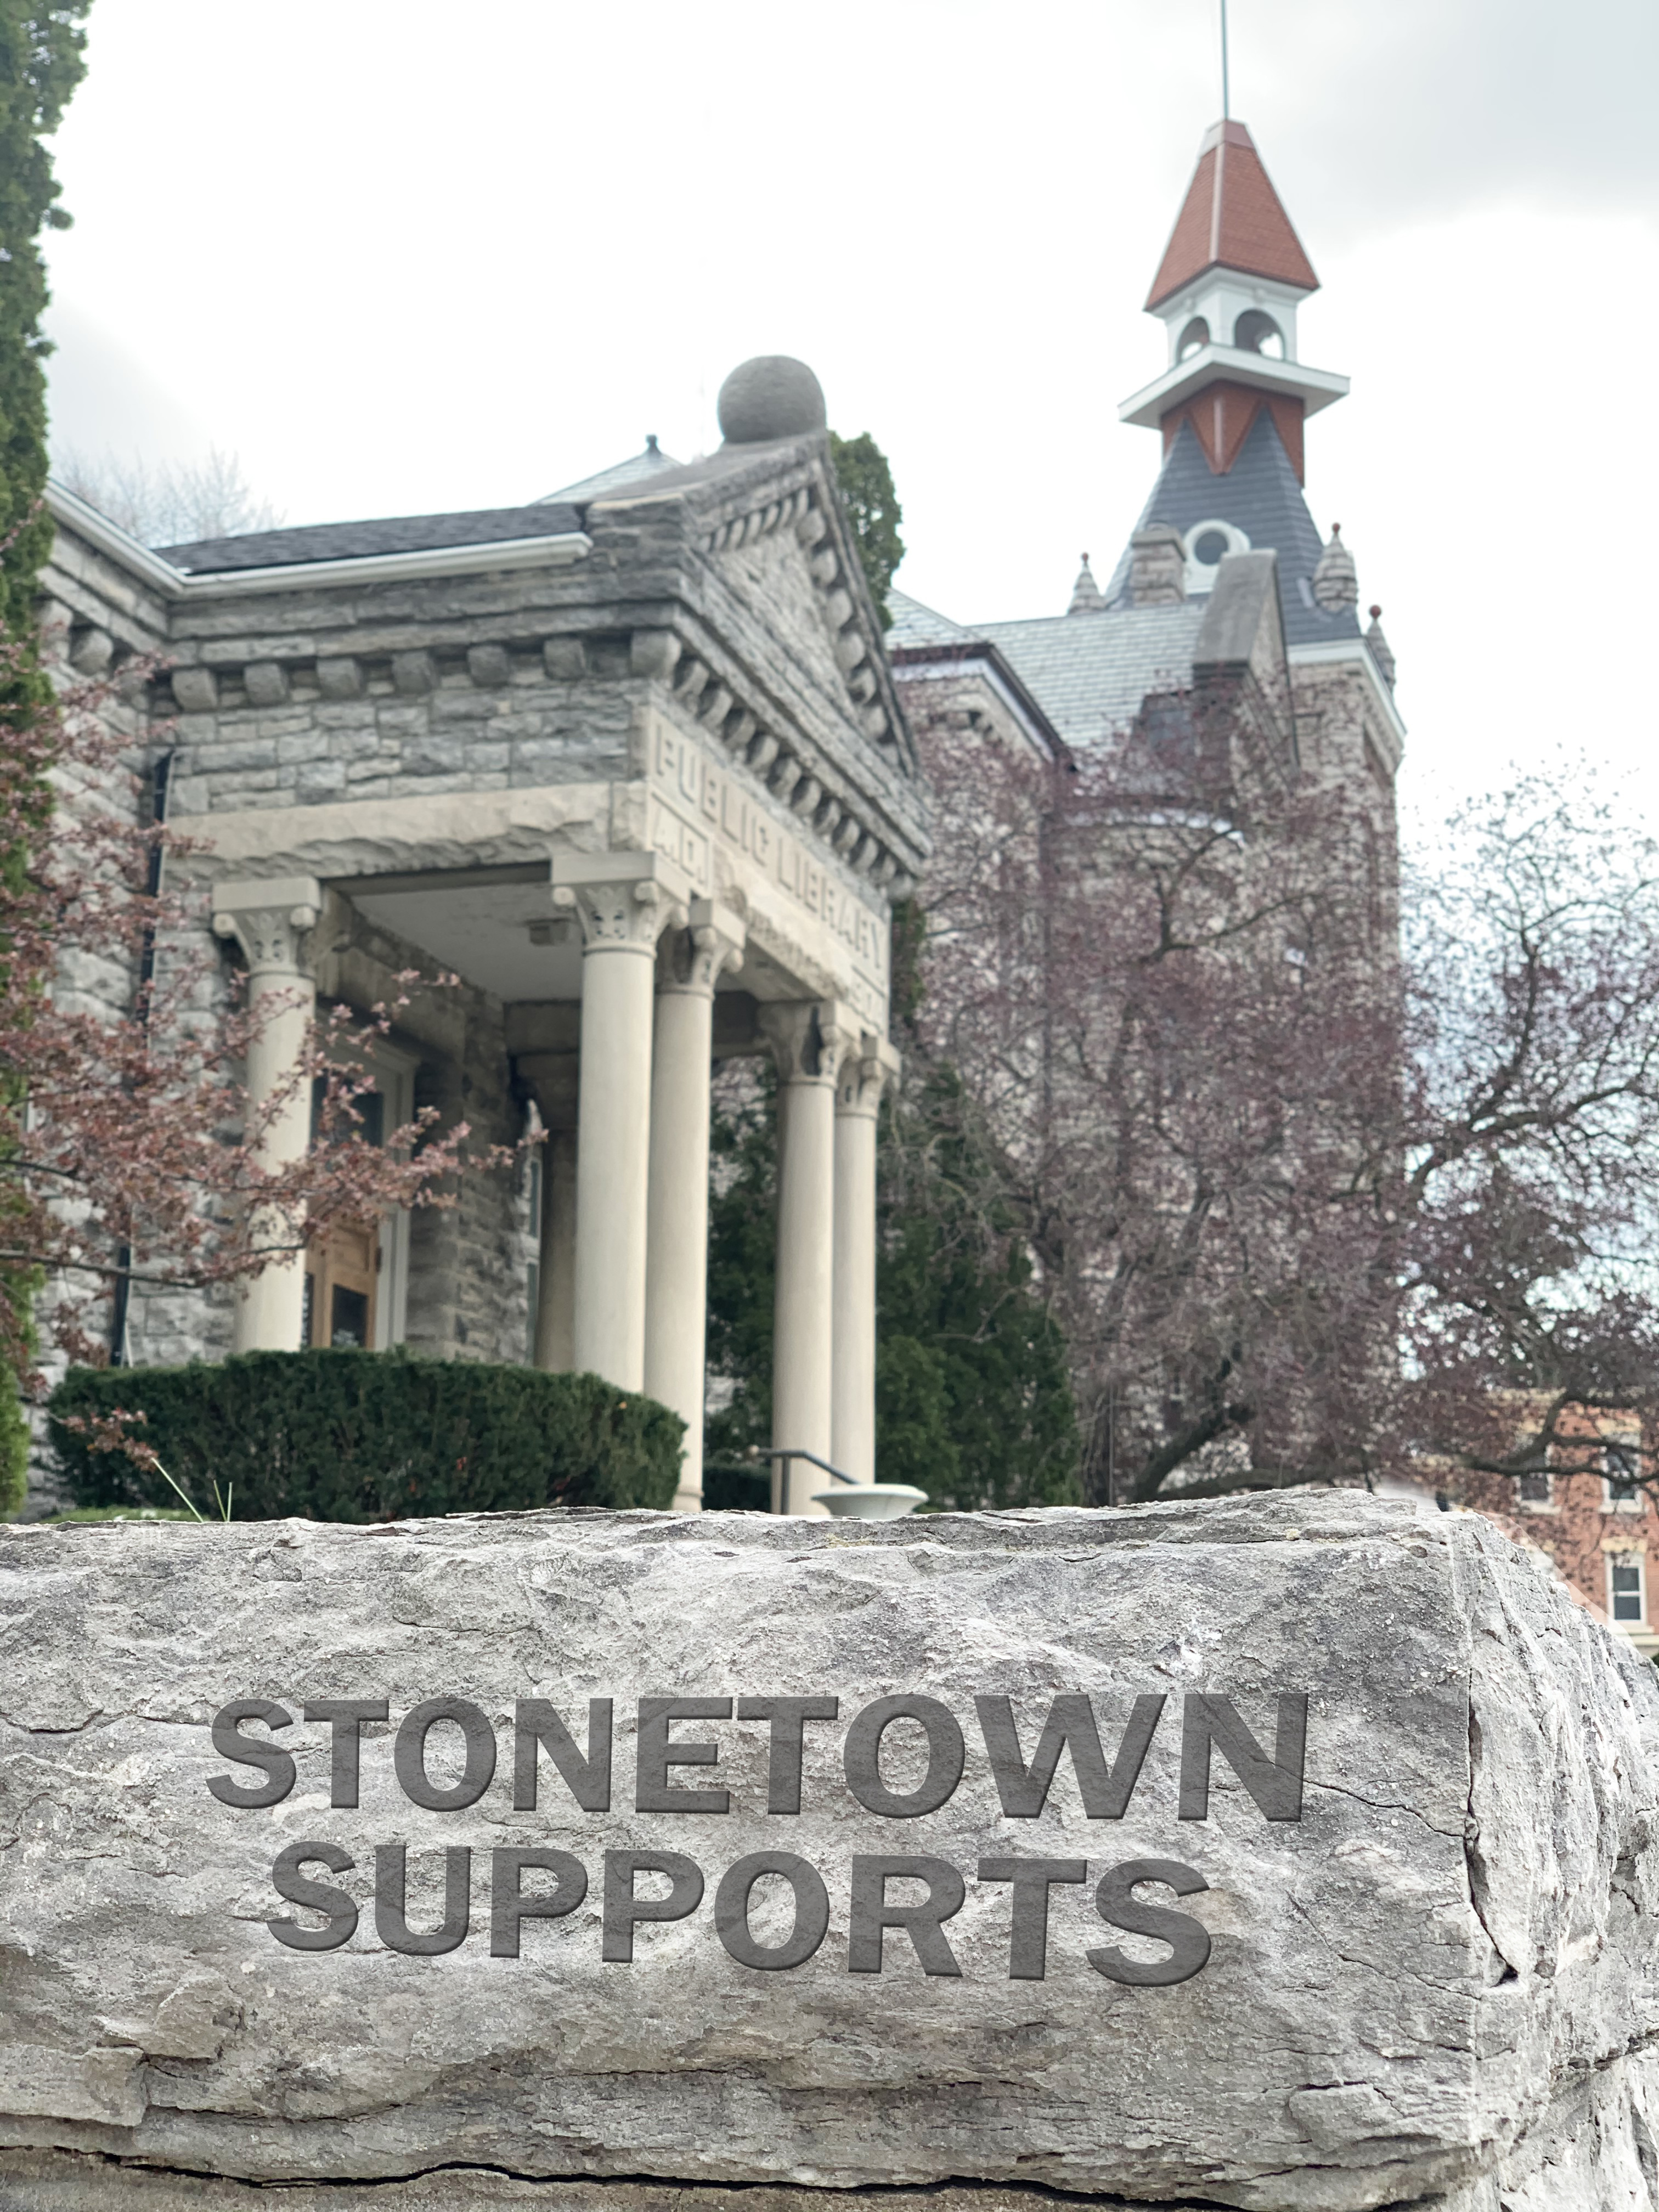 Stonetown Supports